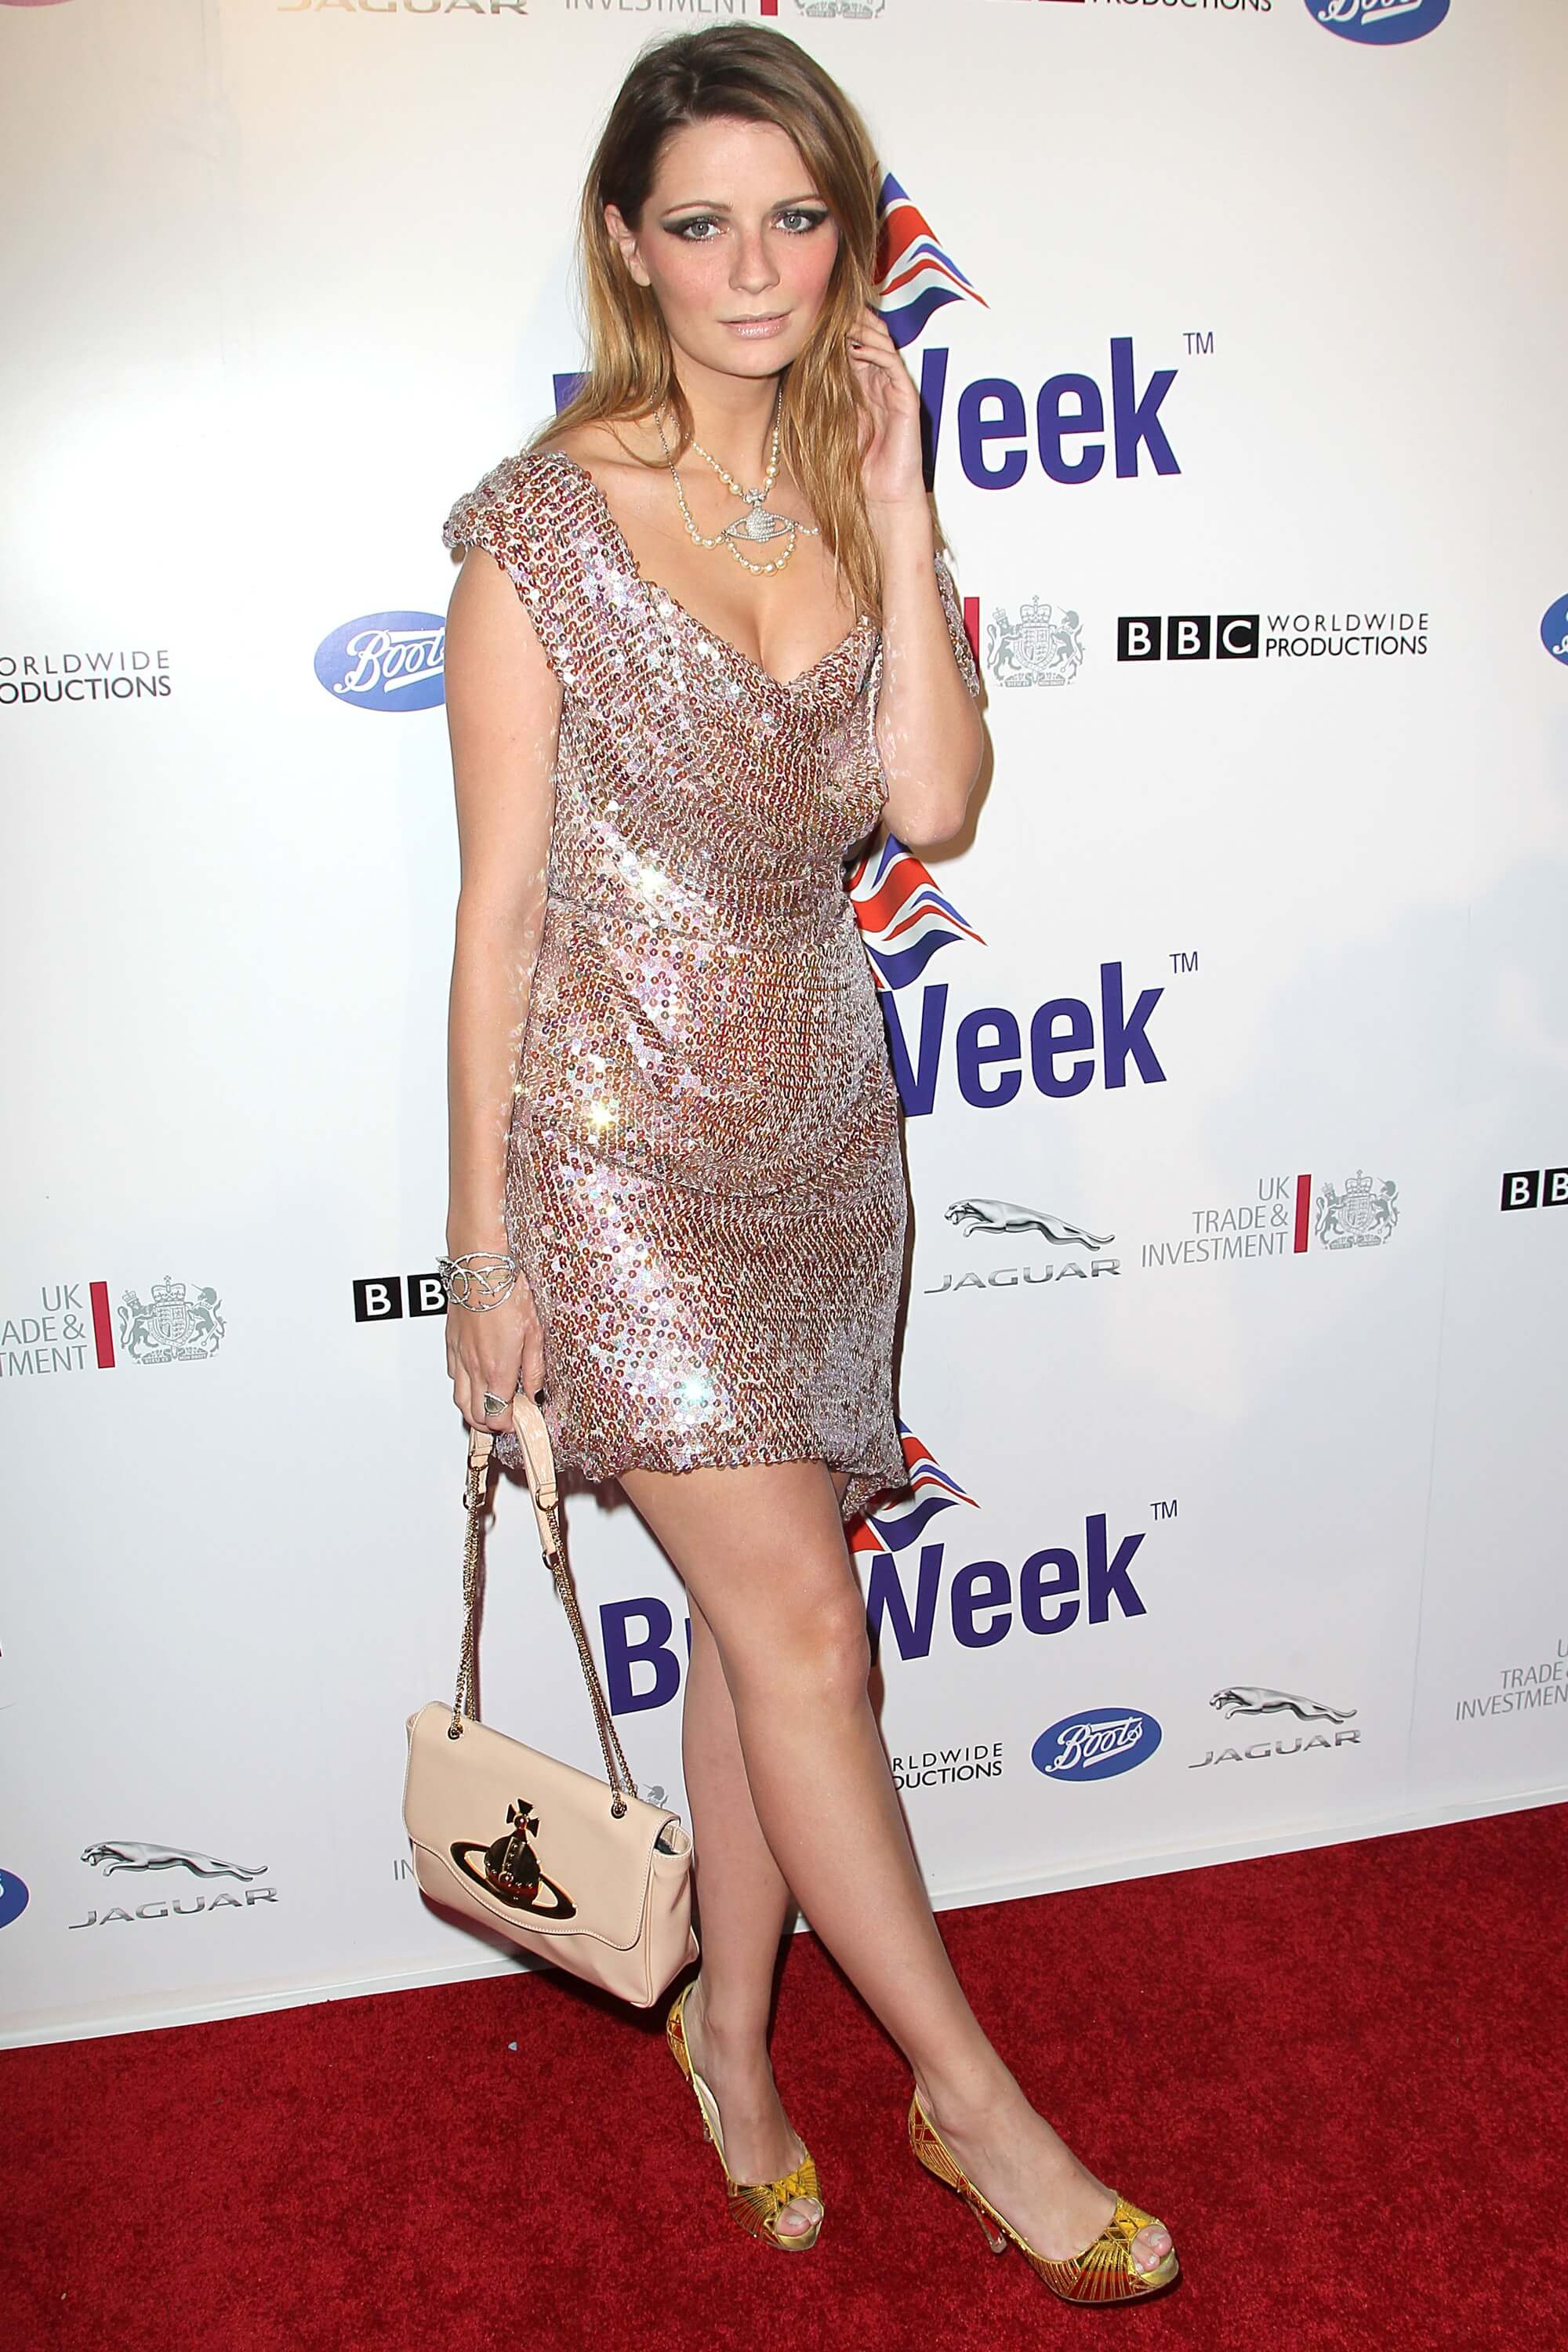 The Hottest Mischa Barton Photos Will Make You To Fall In